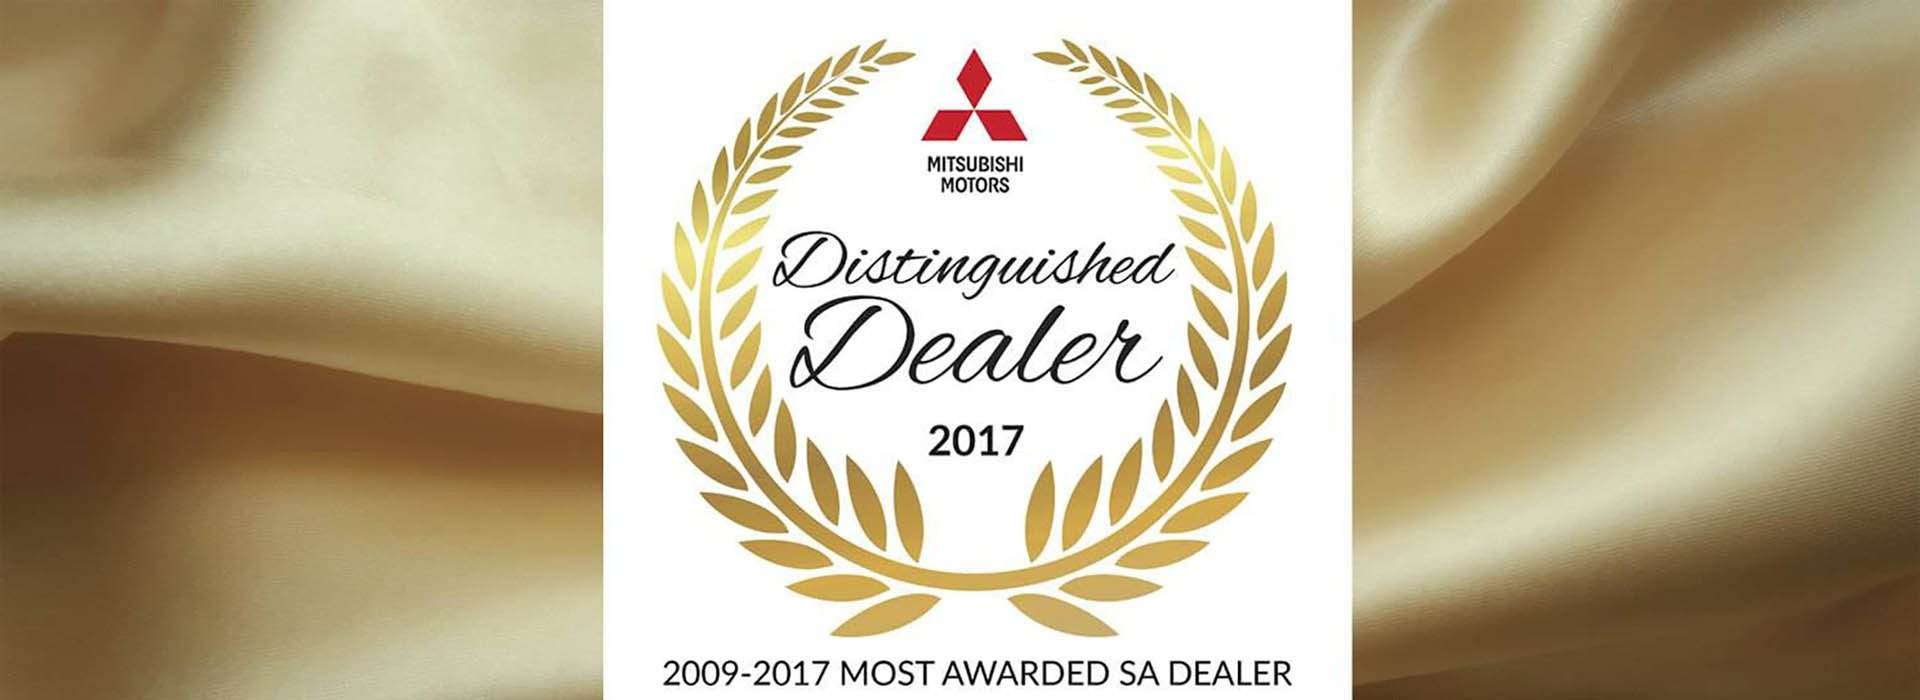 Mitsubishi Distinguished Dealer 2017